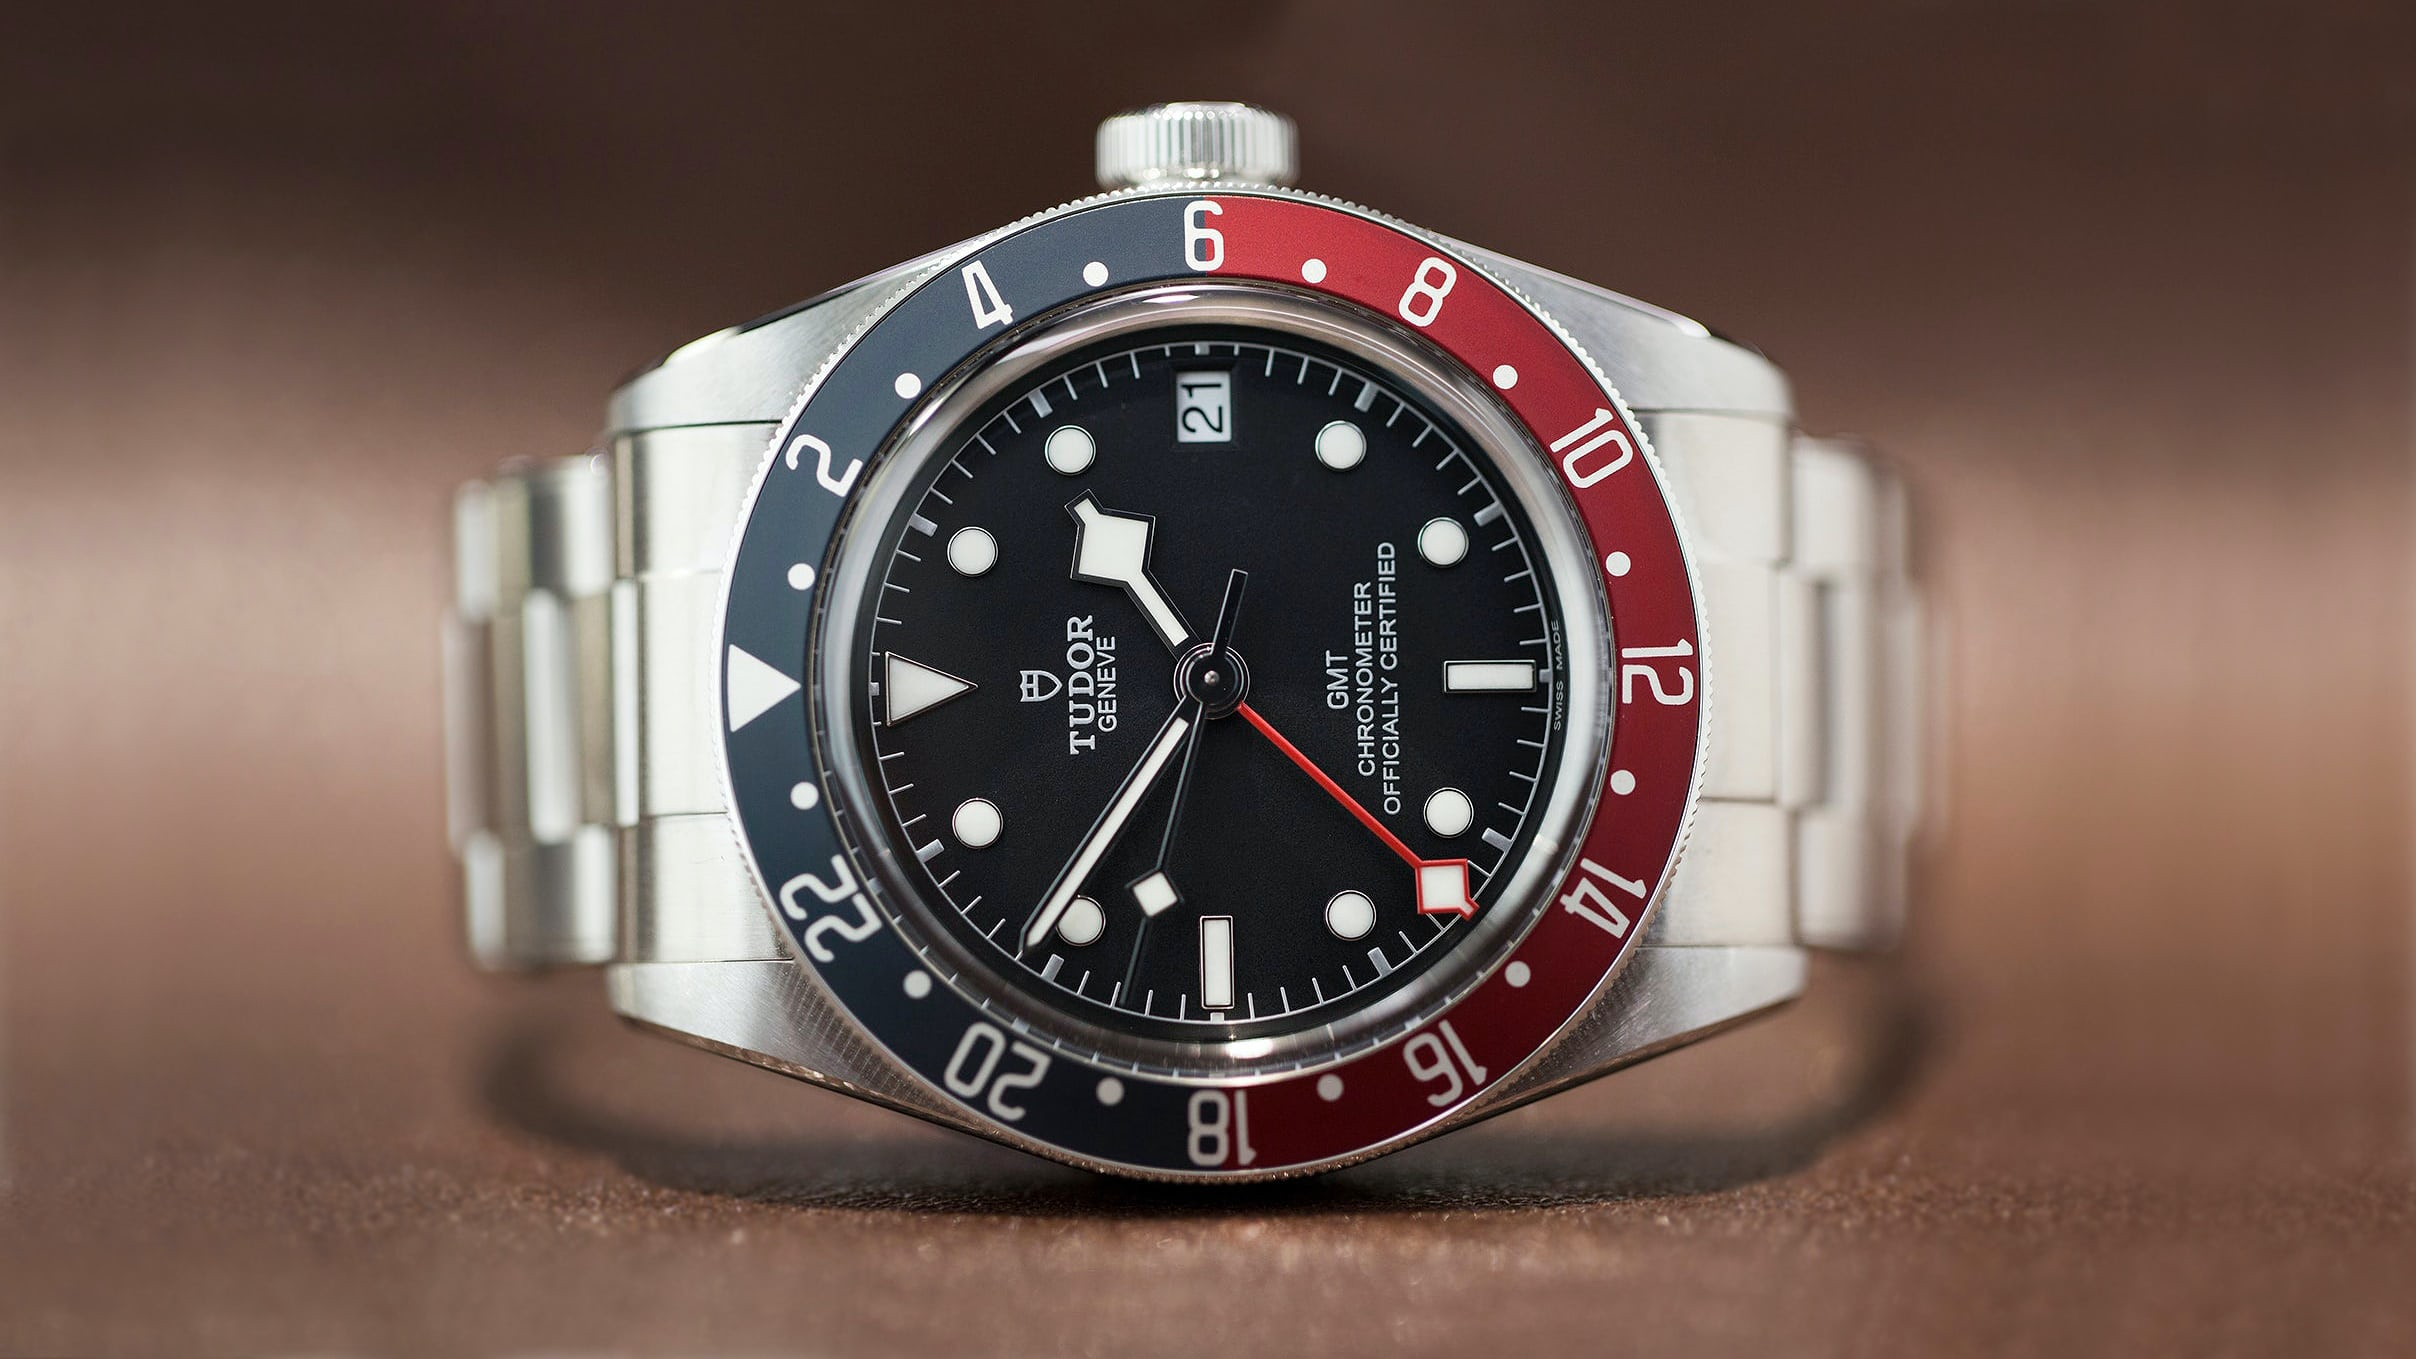 5f5864cfade Editors  Picks  The Best Everyday Watches Of Baselworld 2018 - HODINKEE